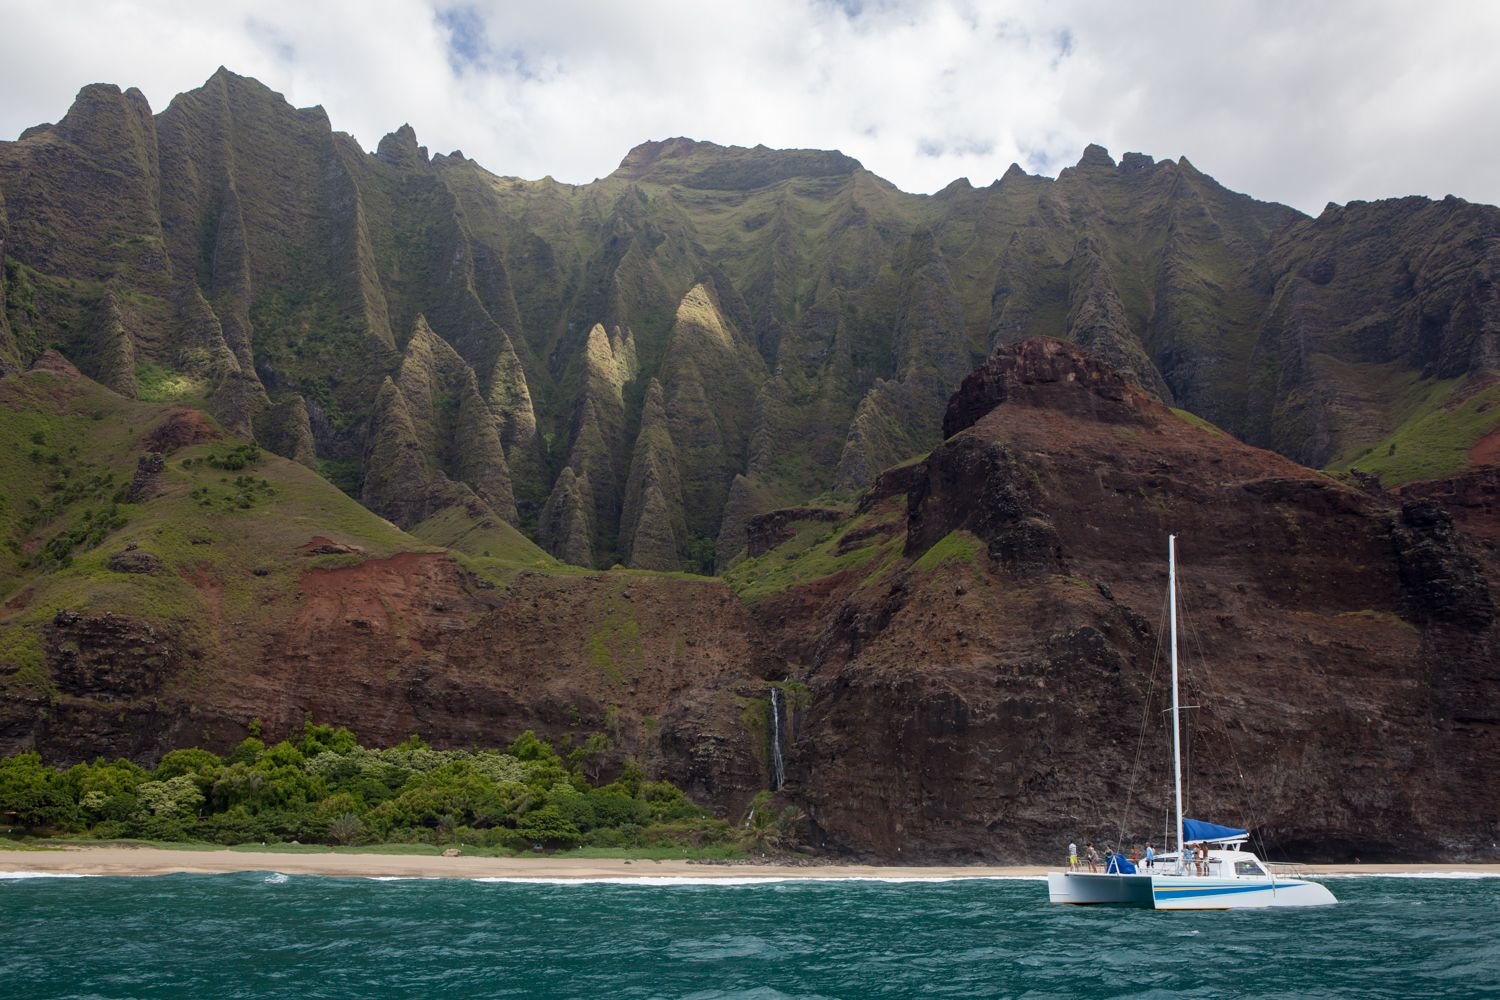 The #NapaliCoast will bring you to your knees, and to another realm of appreciating nature. Don't miss this! . . . #LetHawaiiHappen #KauaiDiscovery #TravelPono #HoloHoloPono #SayYesToAdventure #GoHoloHolo